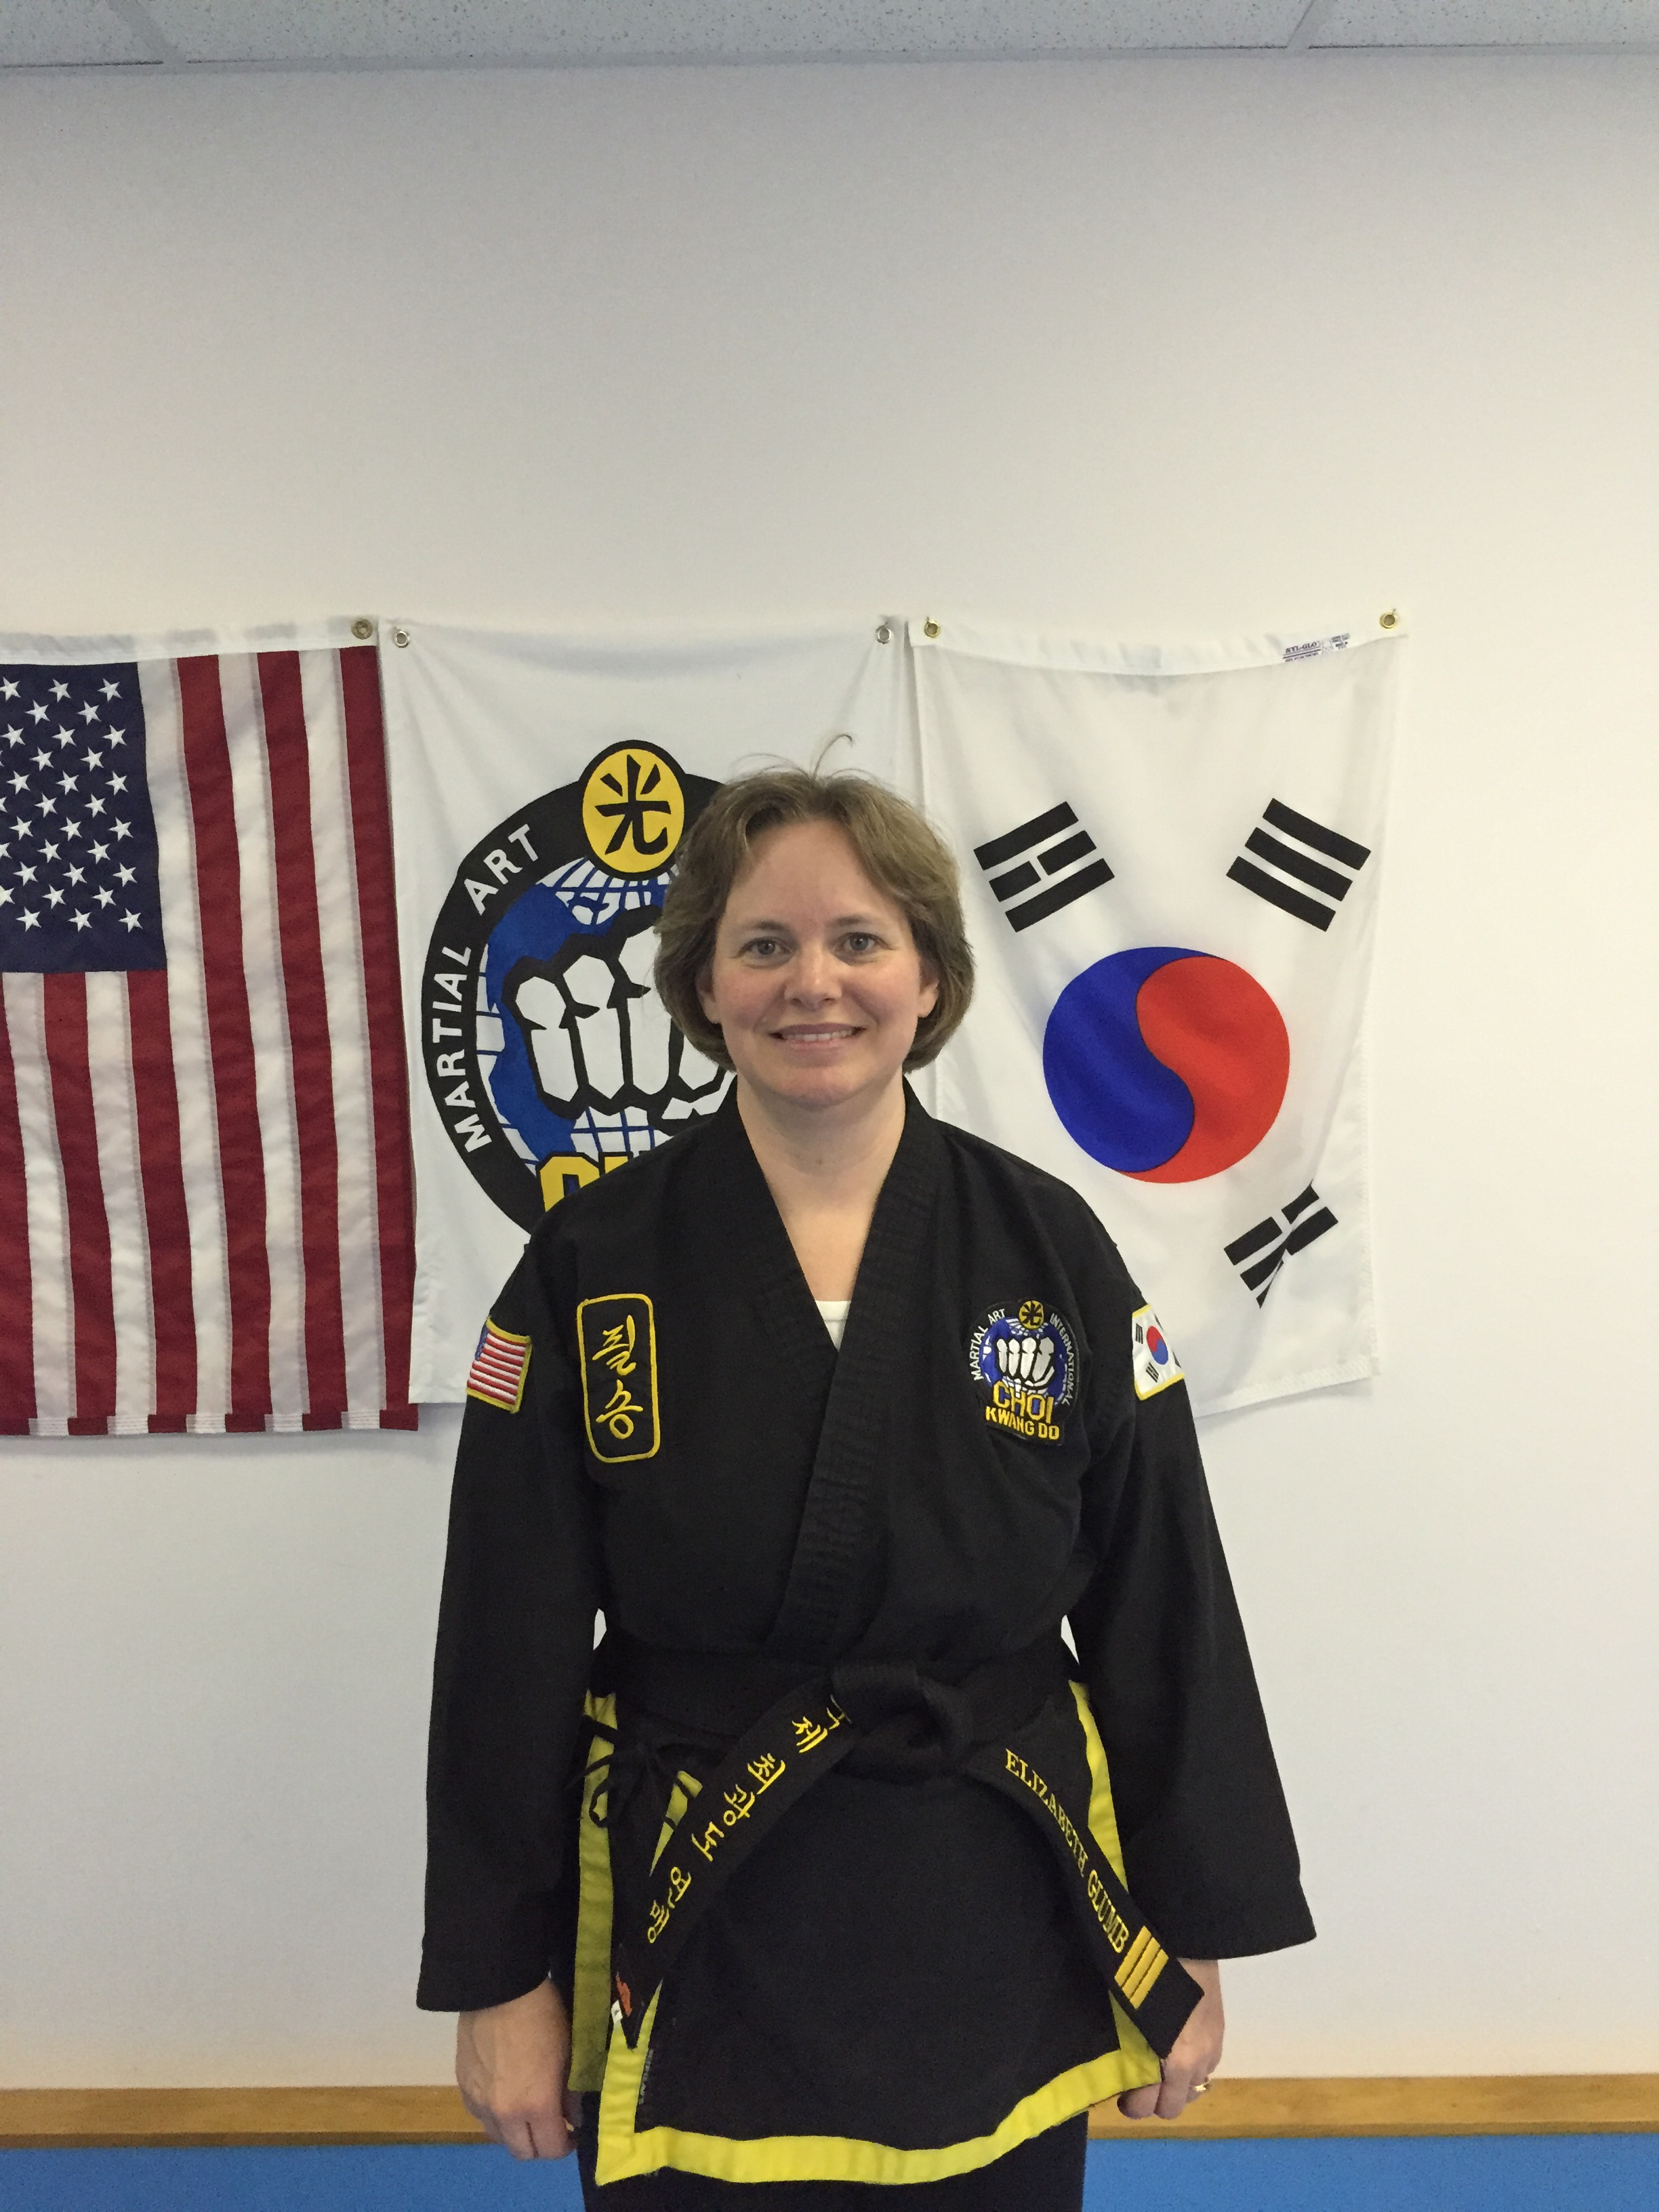 Dating martial arts instructor